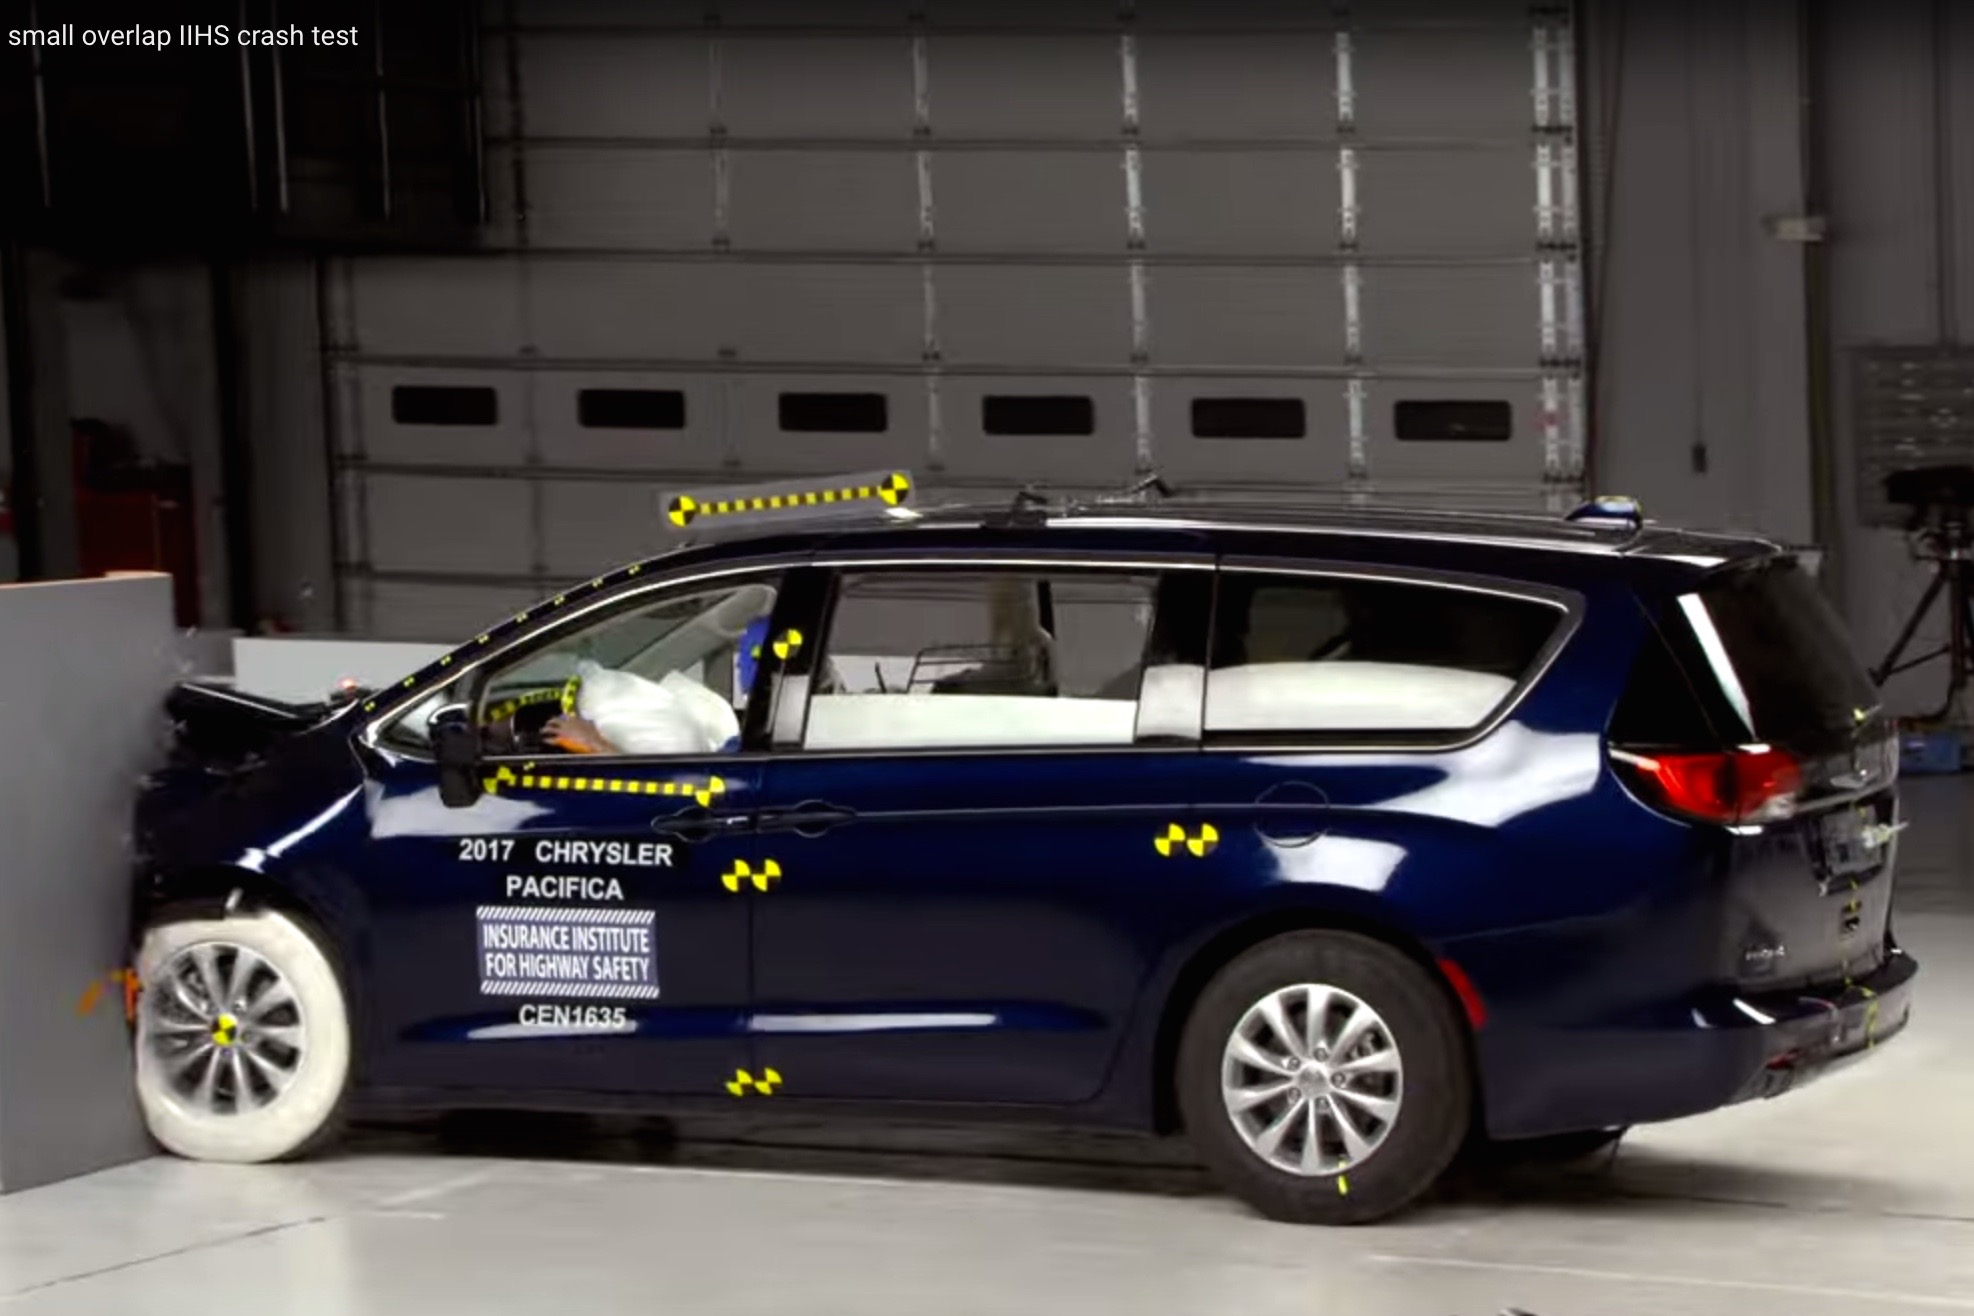 Video: Chrysler Pacifica Wins Top Safety Award